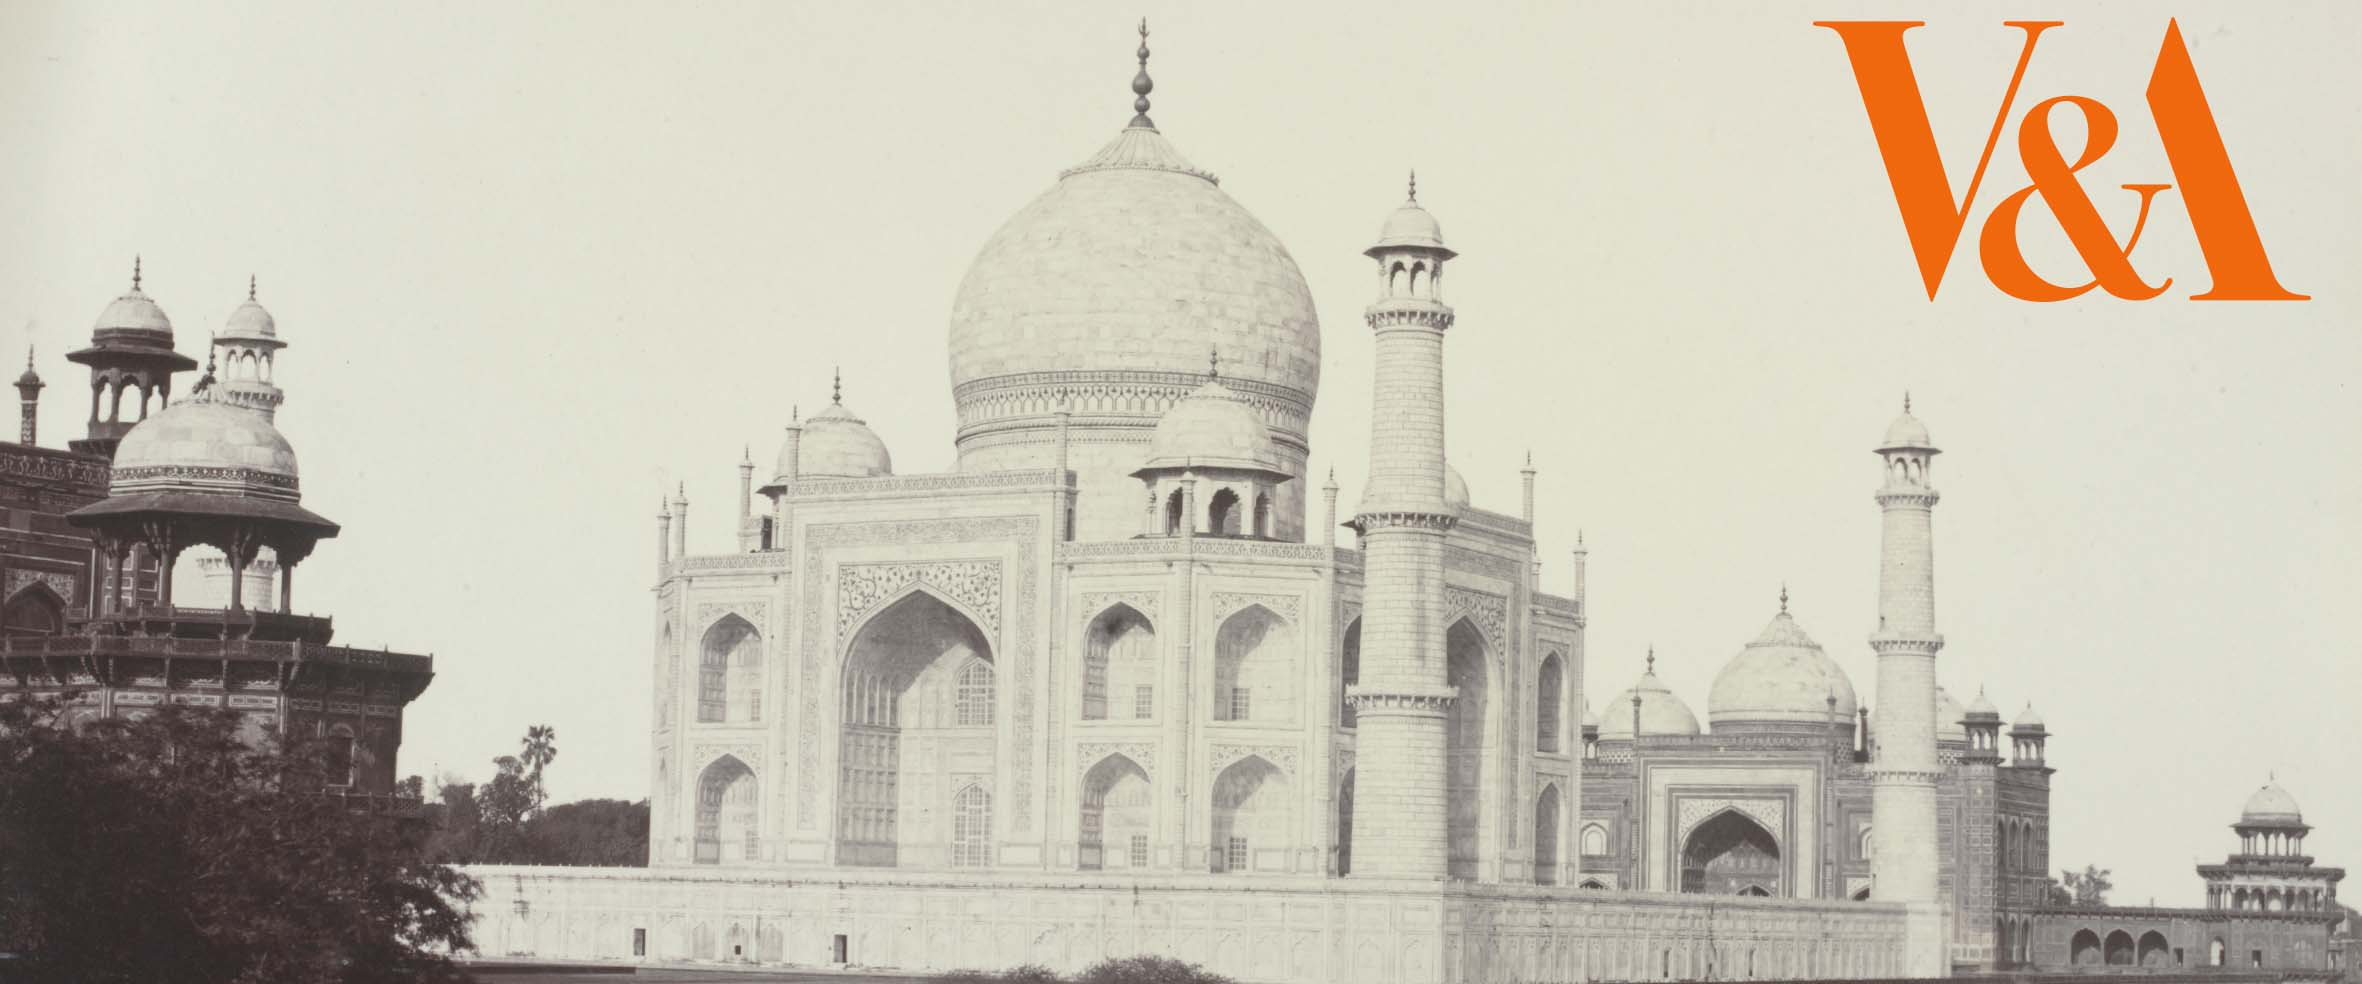 The Taj Mahal from the river, Agra, Shepherd & Robertson, India, 1862-63 © Victoria and Albert Museum, London